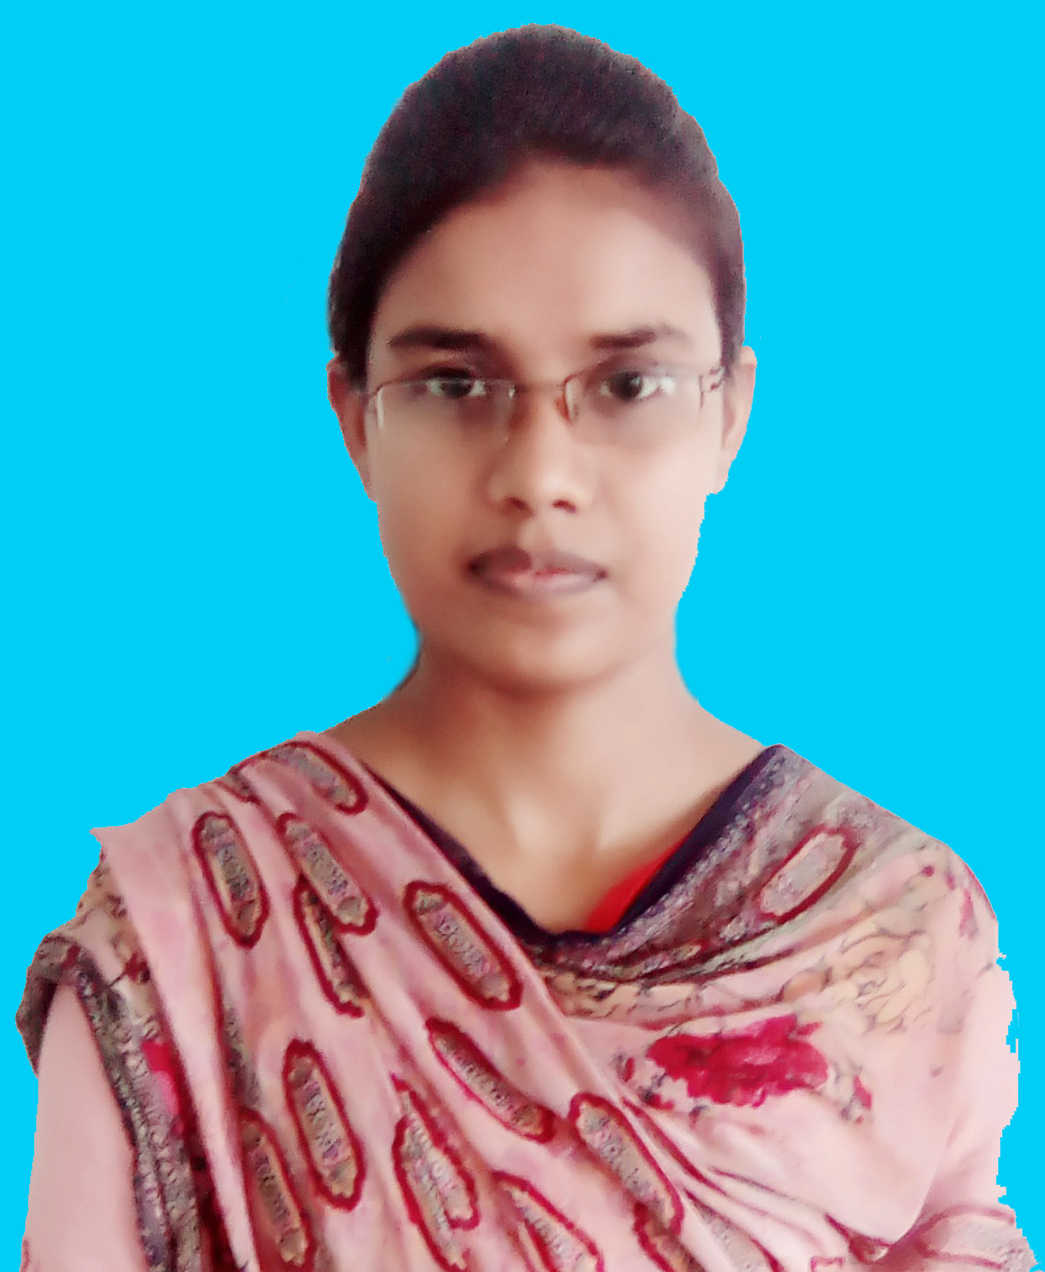 Prity Rani Karmokar Instructor Nursing